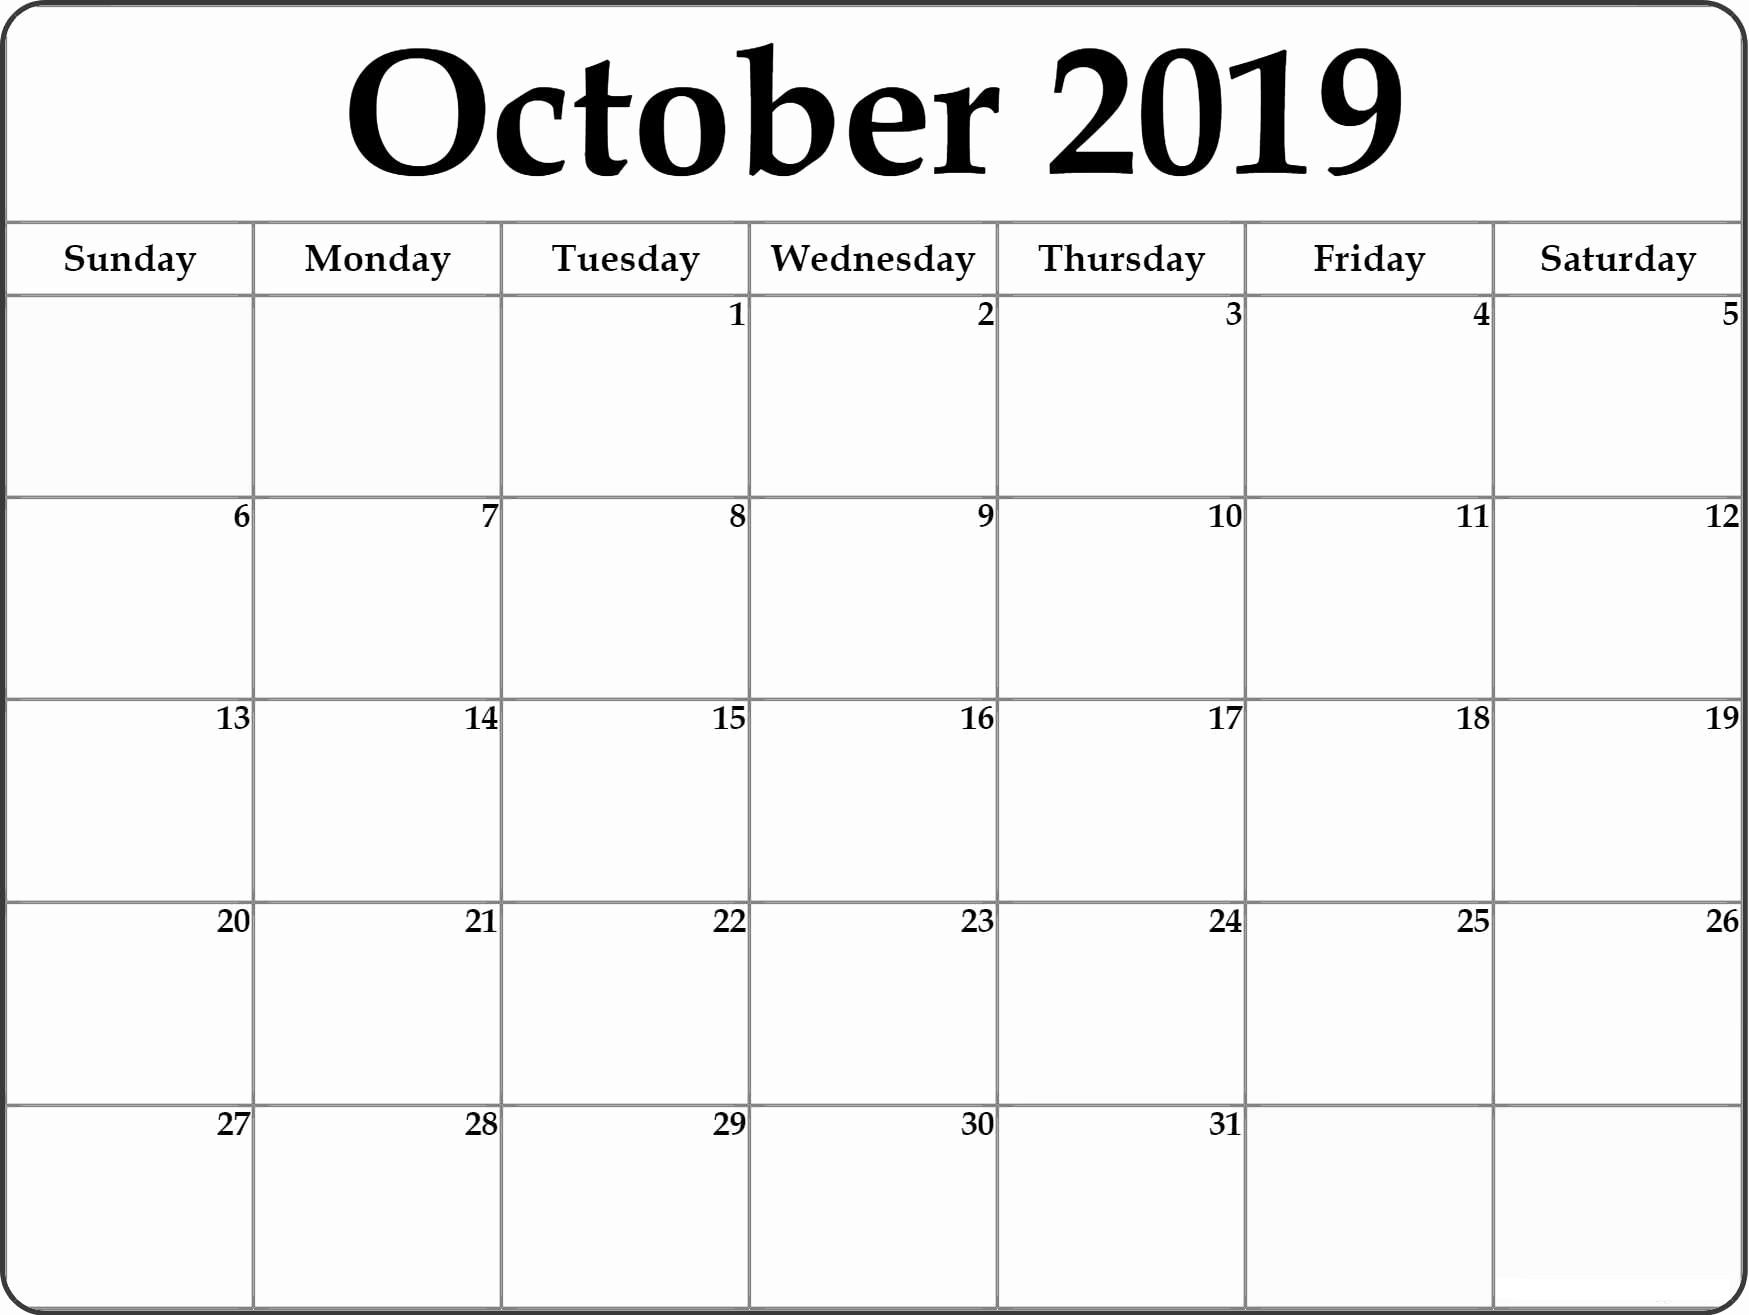 October 2019 Calendar With Holidays Planner - Print Calendar inside Editable October 2019 Calendar With Religious Holidays